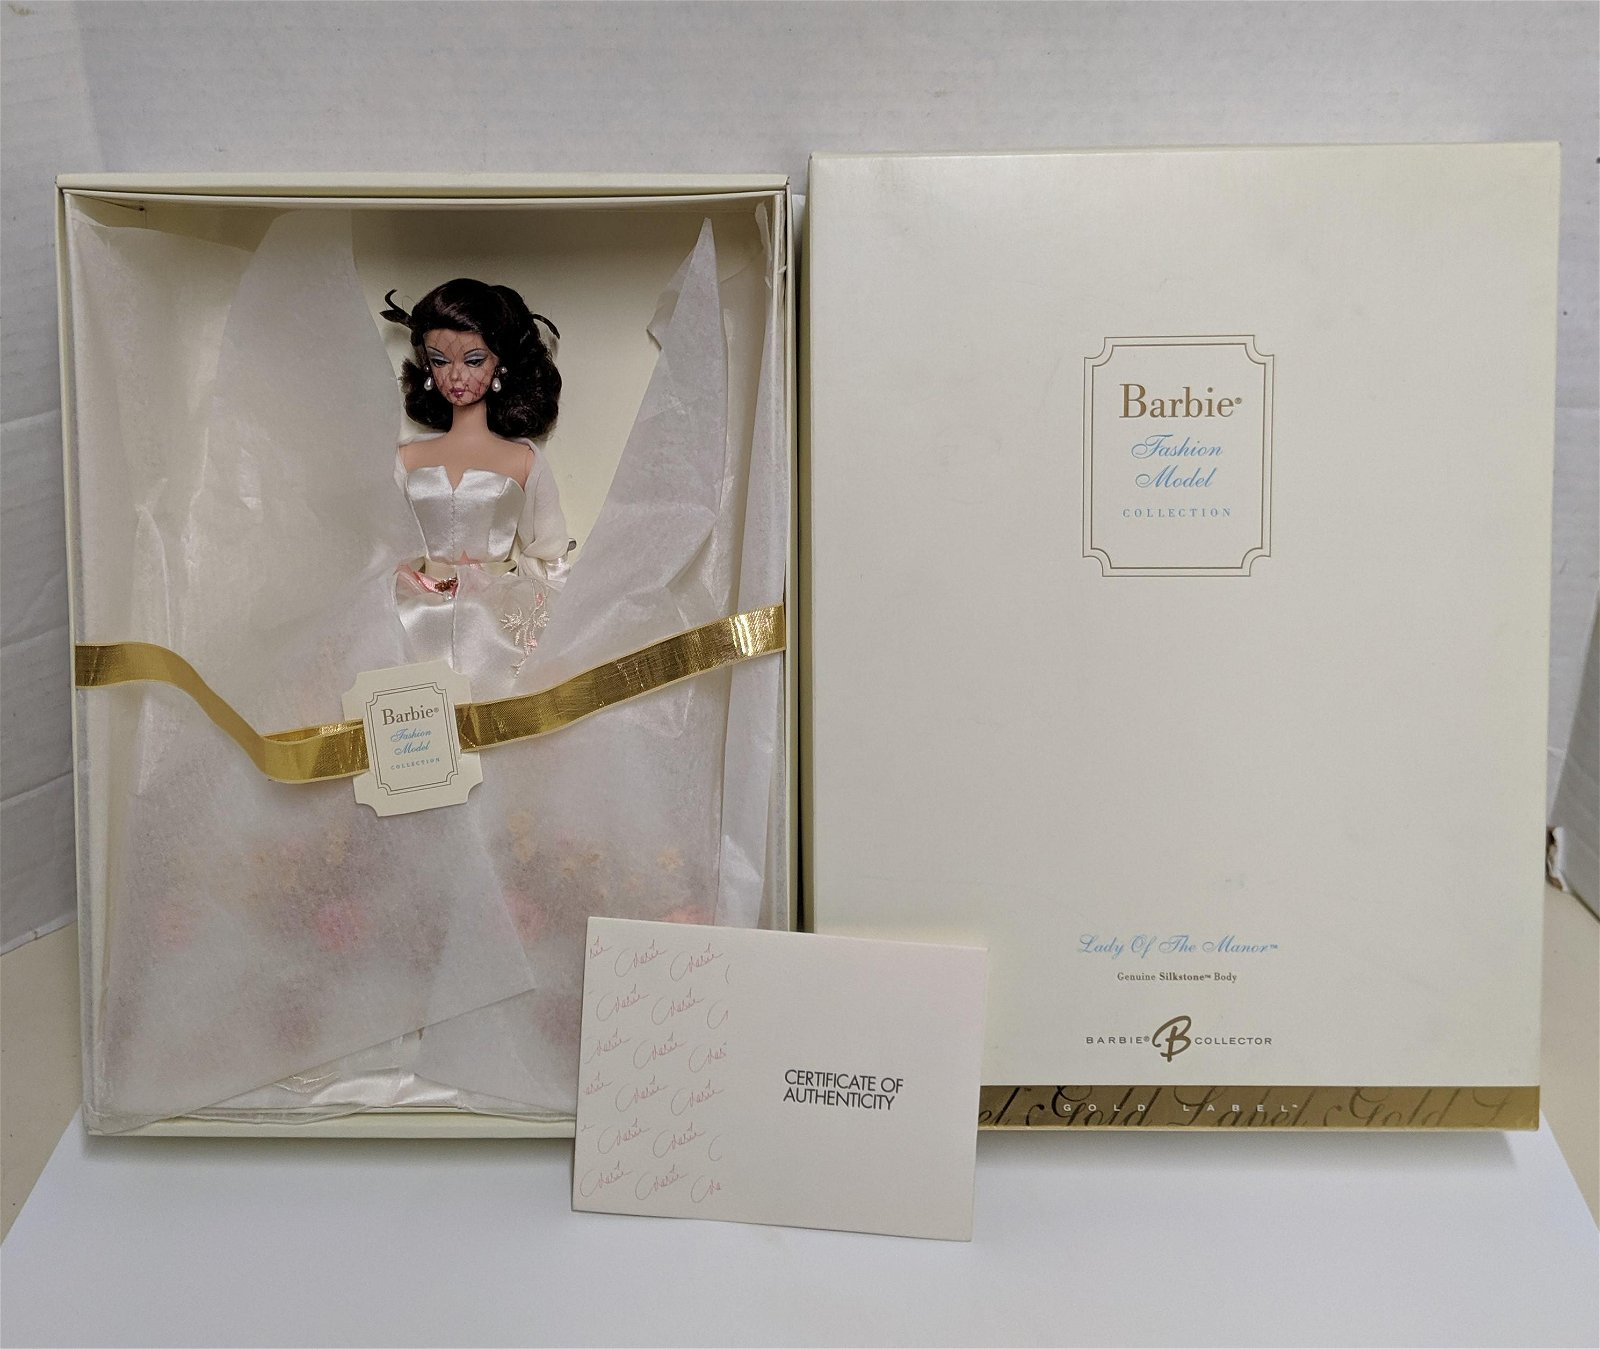 Barbie Fashion Model Collection Lady of the Manor